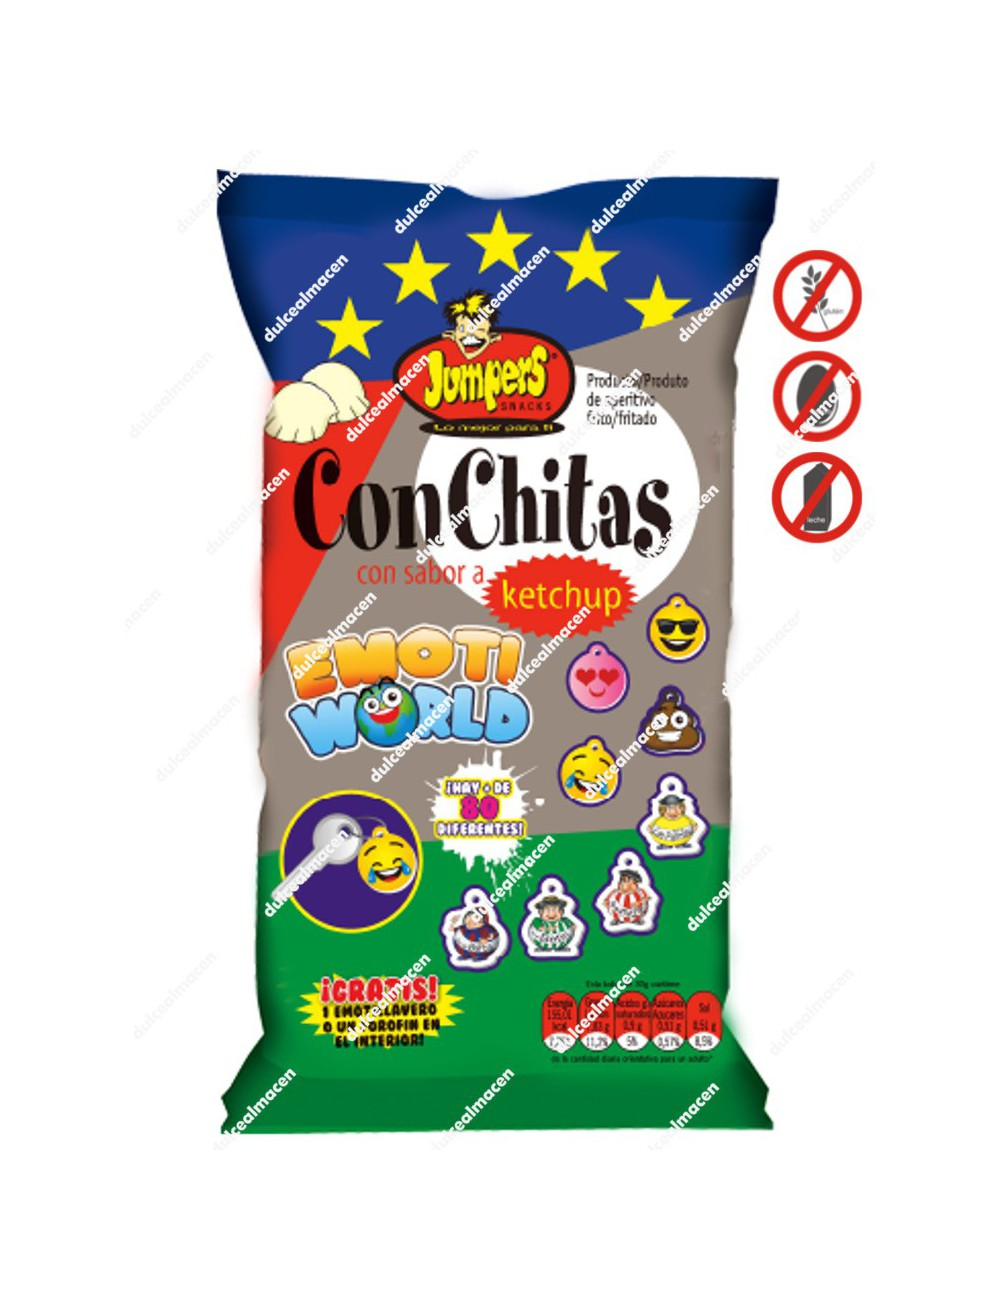 Jumpers conchitas ketchup